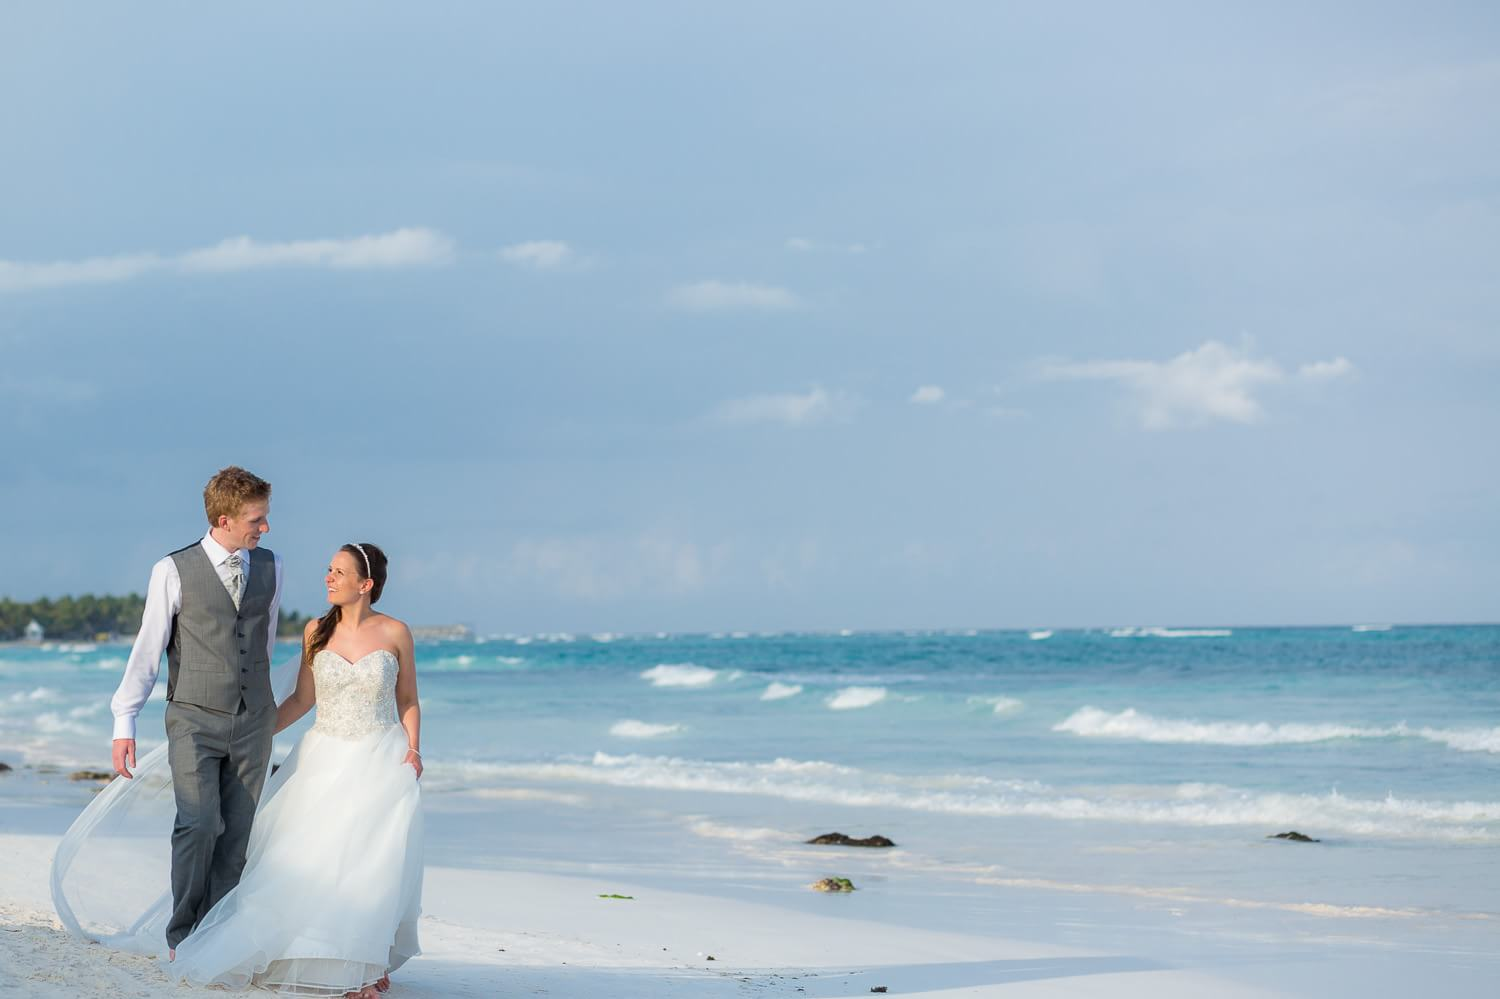 Couple walking on beach in Mexico.